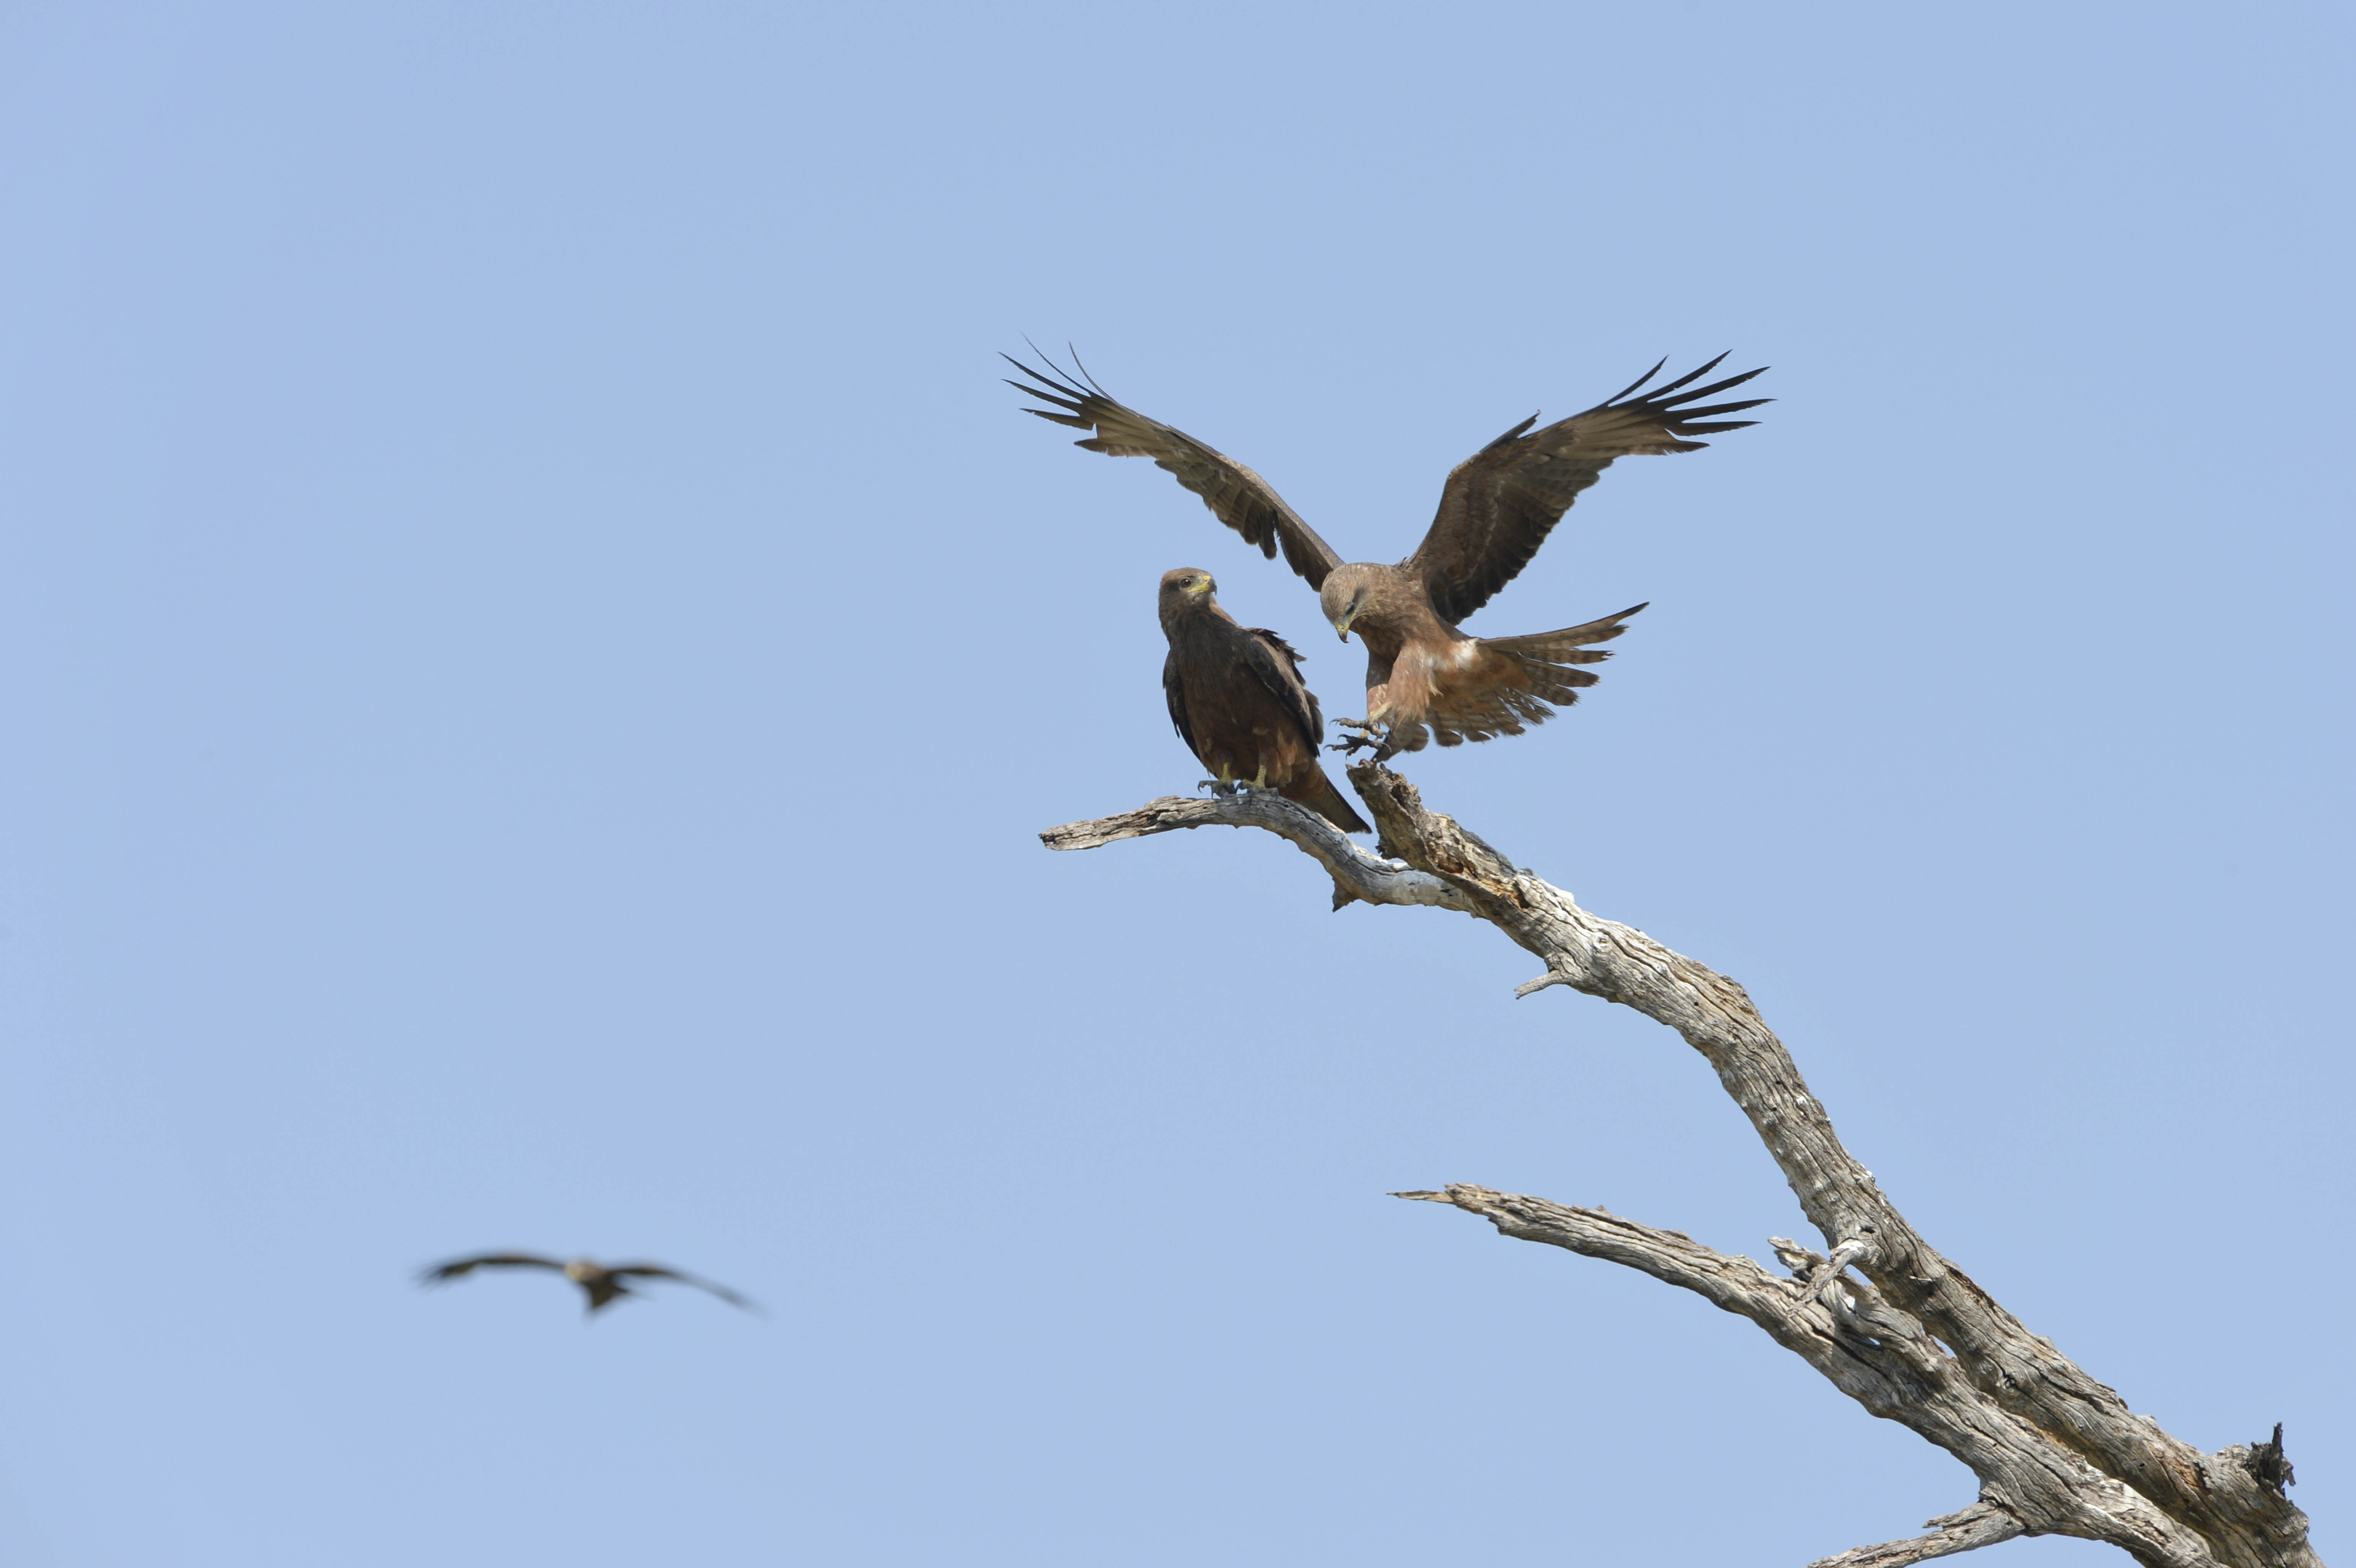 Kite, black (Milvus migrans), ZA ©Johannes Ratermann